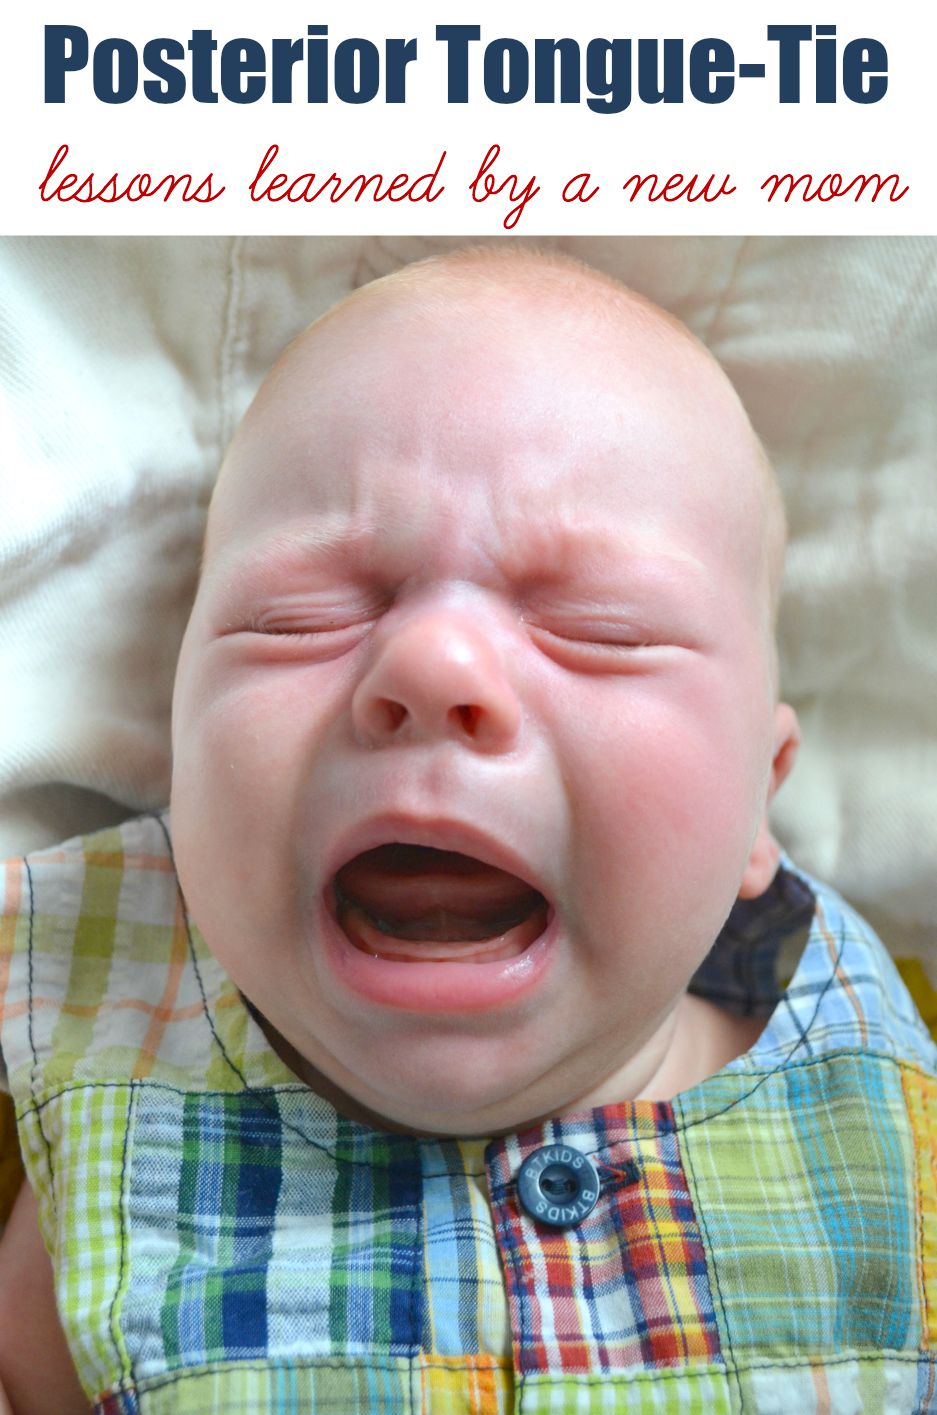 Posterior Tongue-Tie in babies - effects on breastfeeding, tongue tie repairs and more.